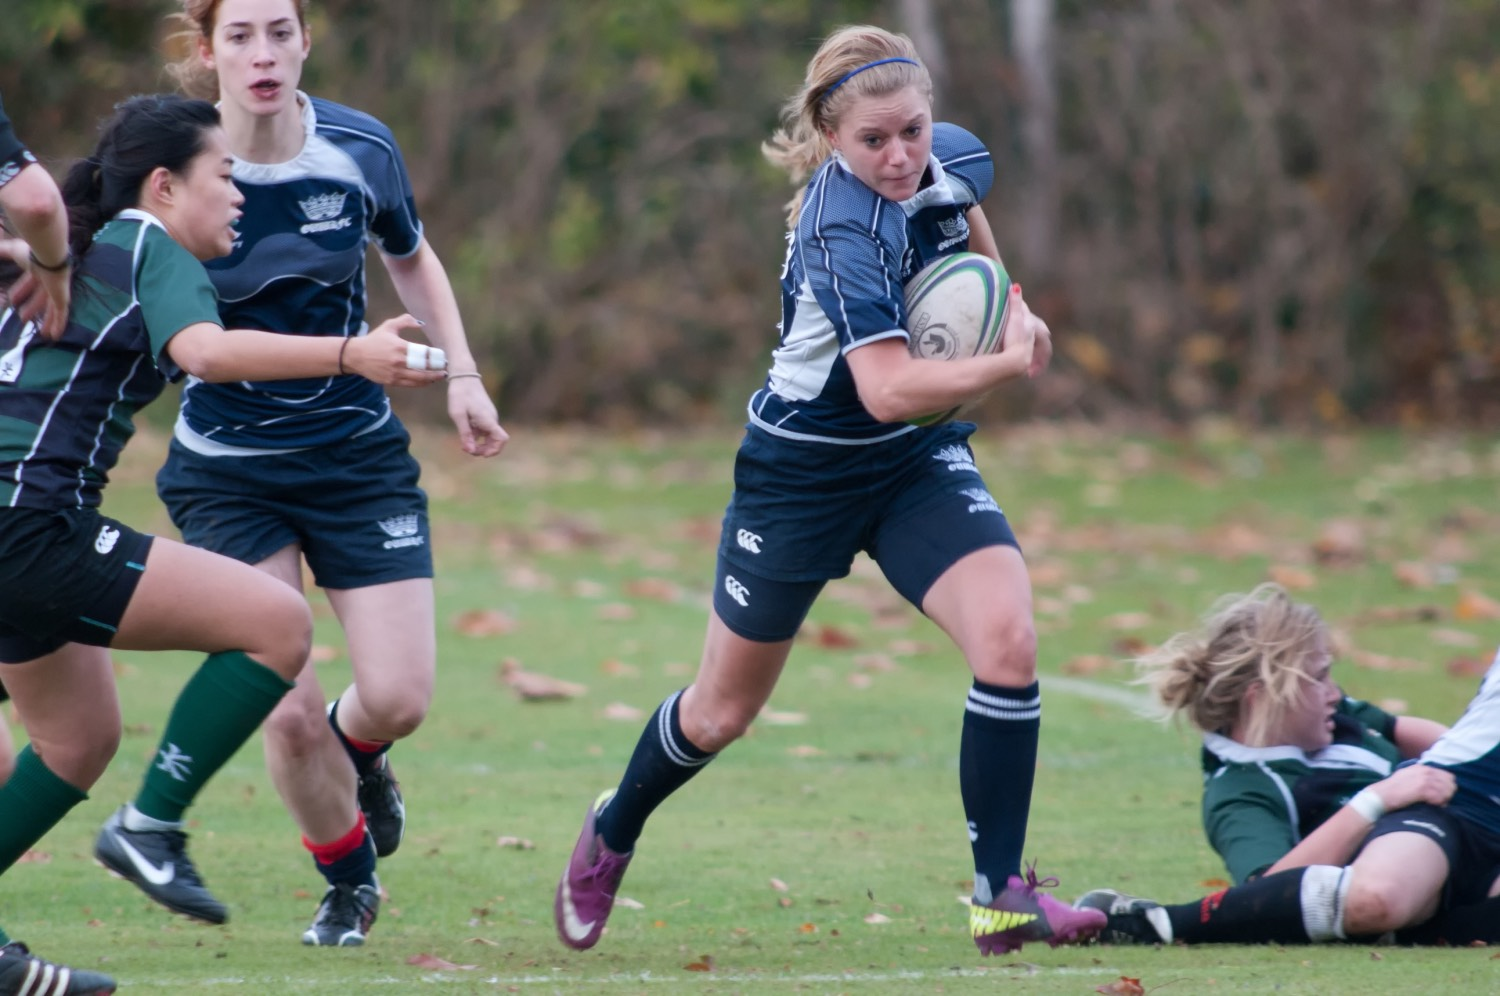 nude female rugby players photos